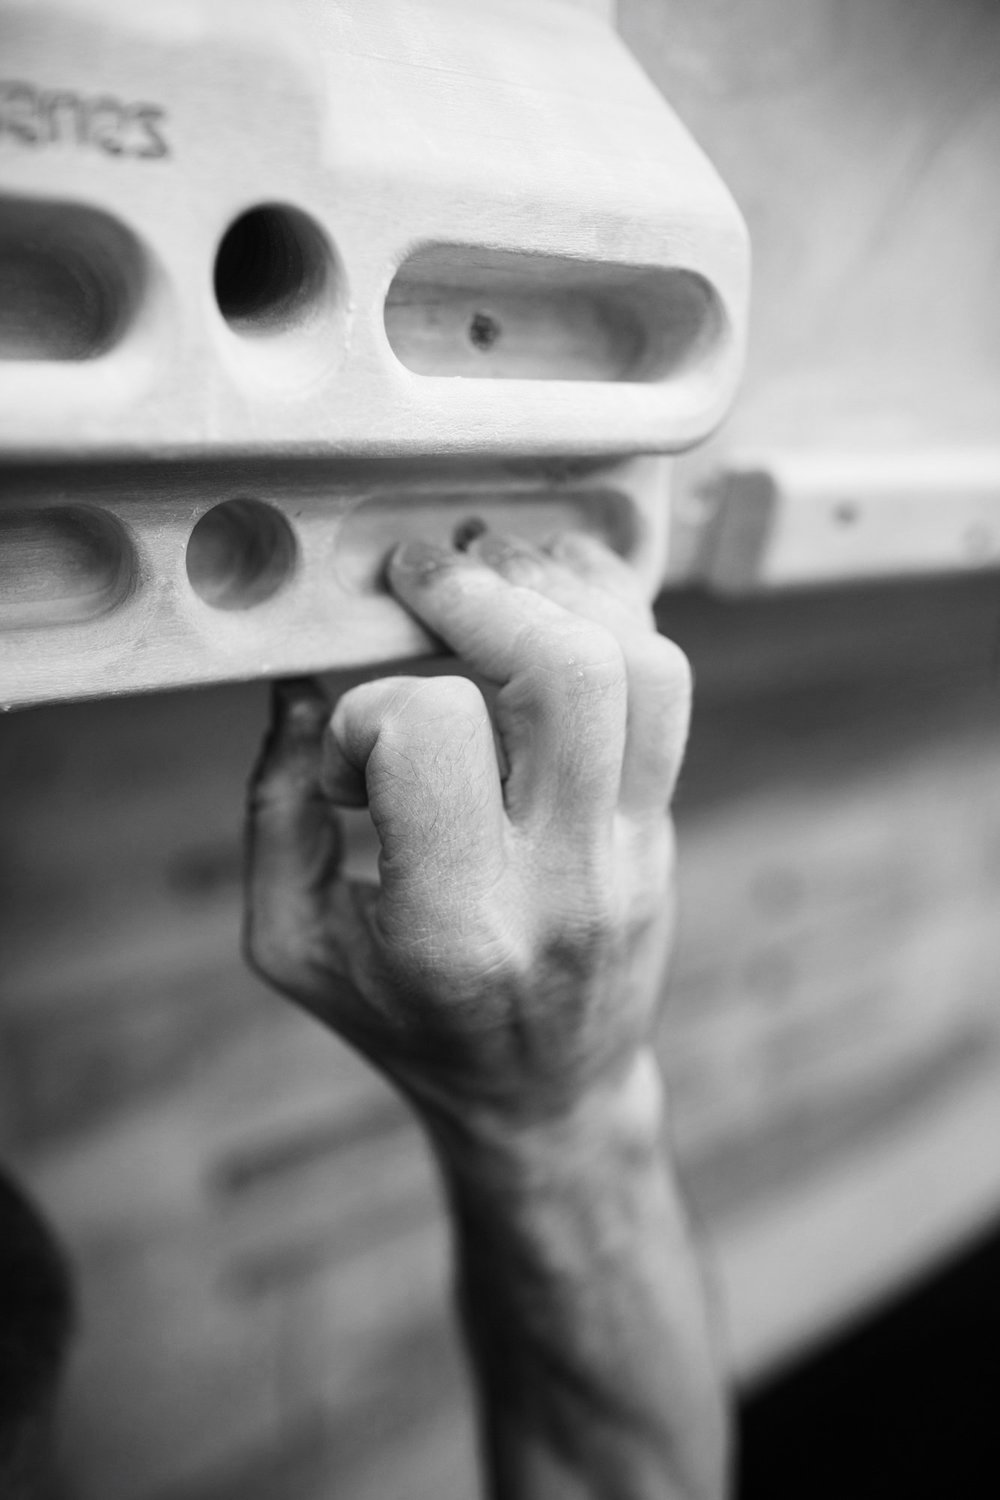 Beastmaker strength tests will identify which finger grips are strongest and weakness. Photo: Nick Brown